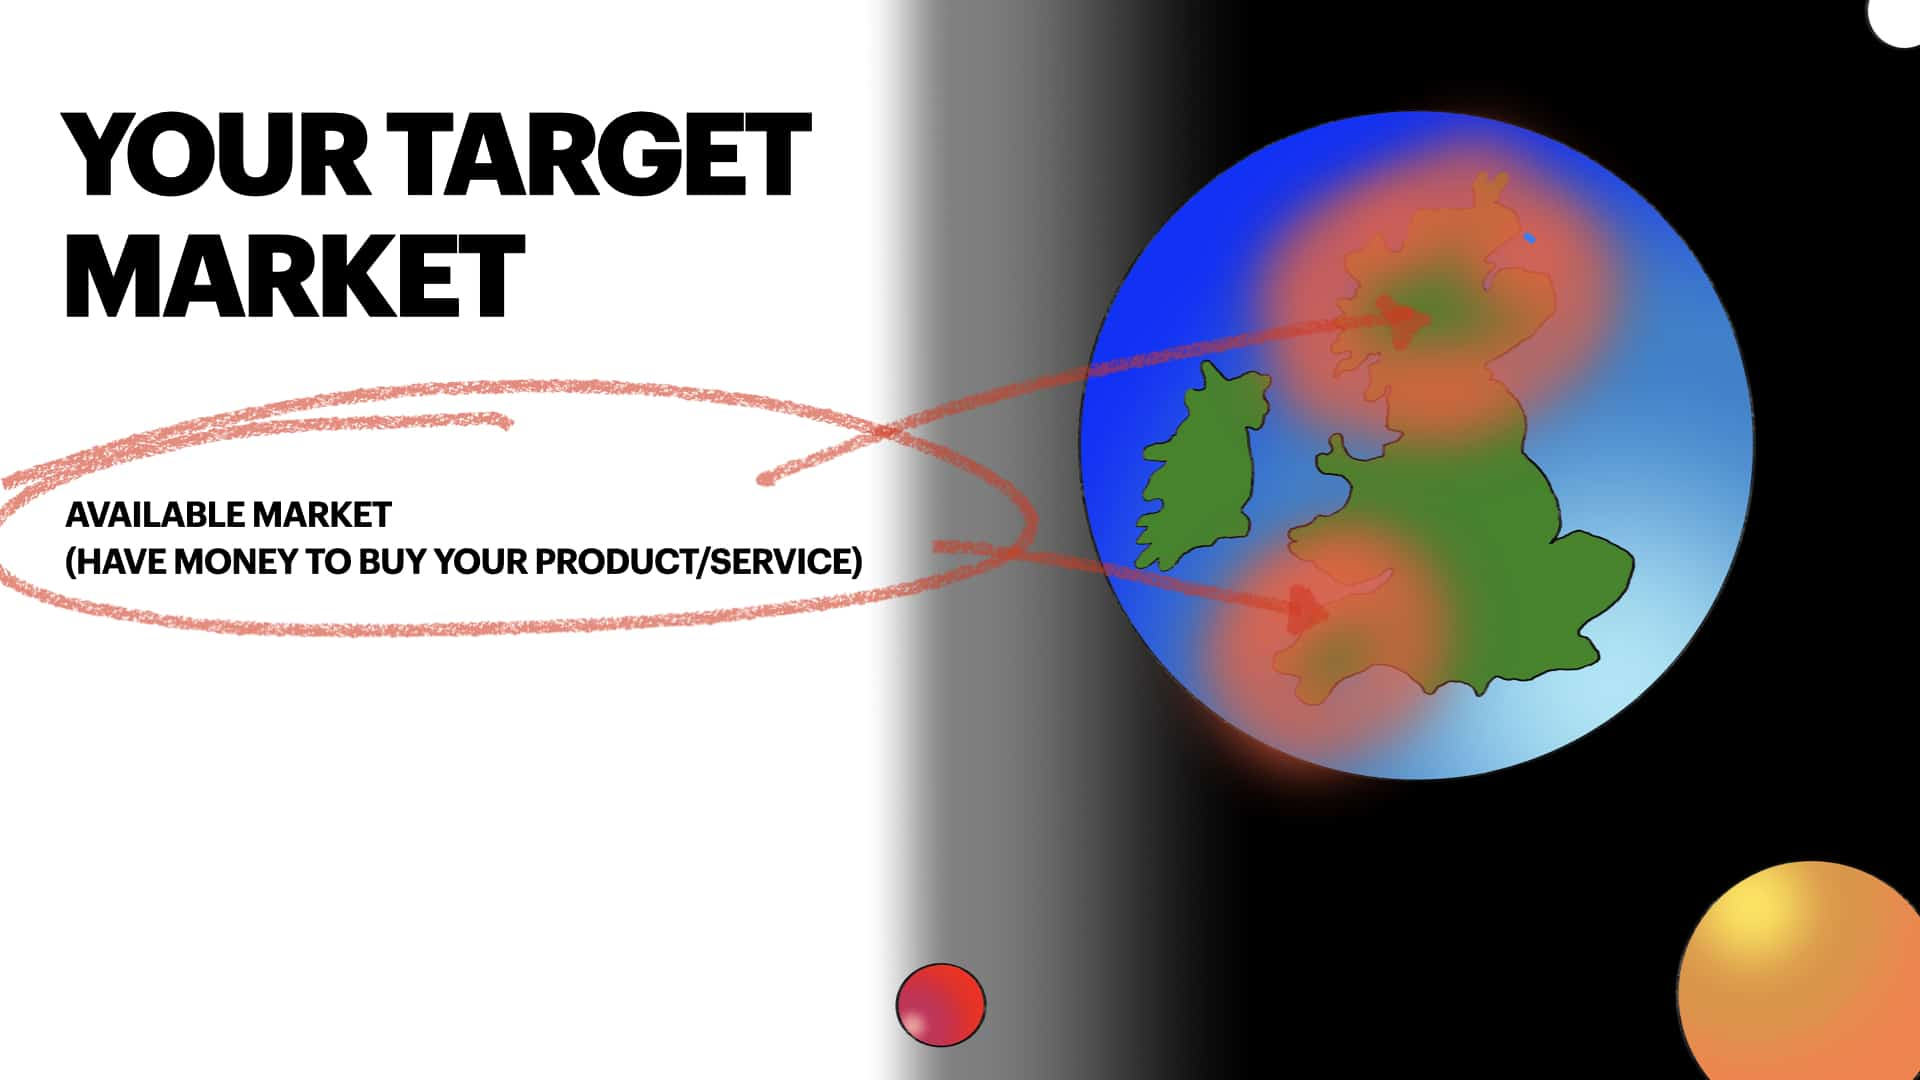 small business target markets - available market by business coach Marc Ford